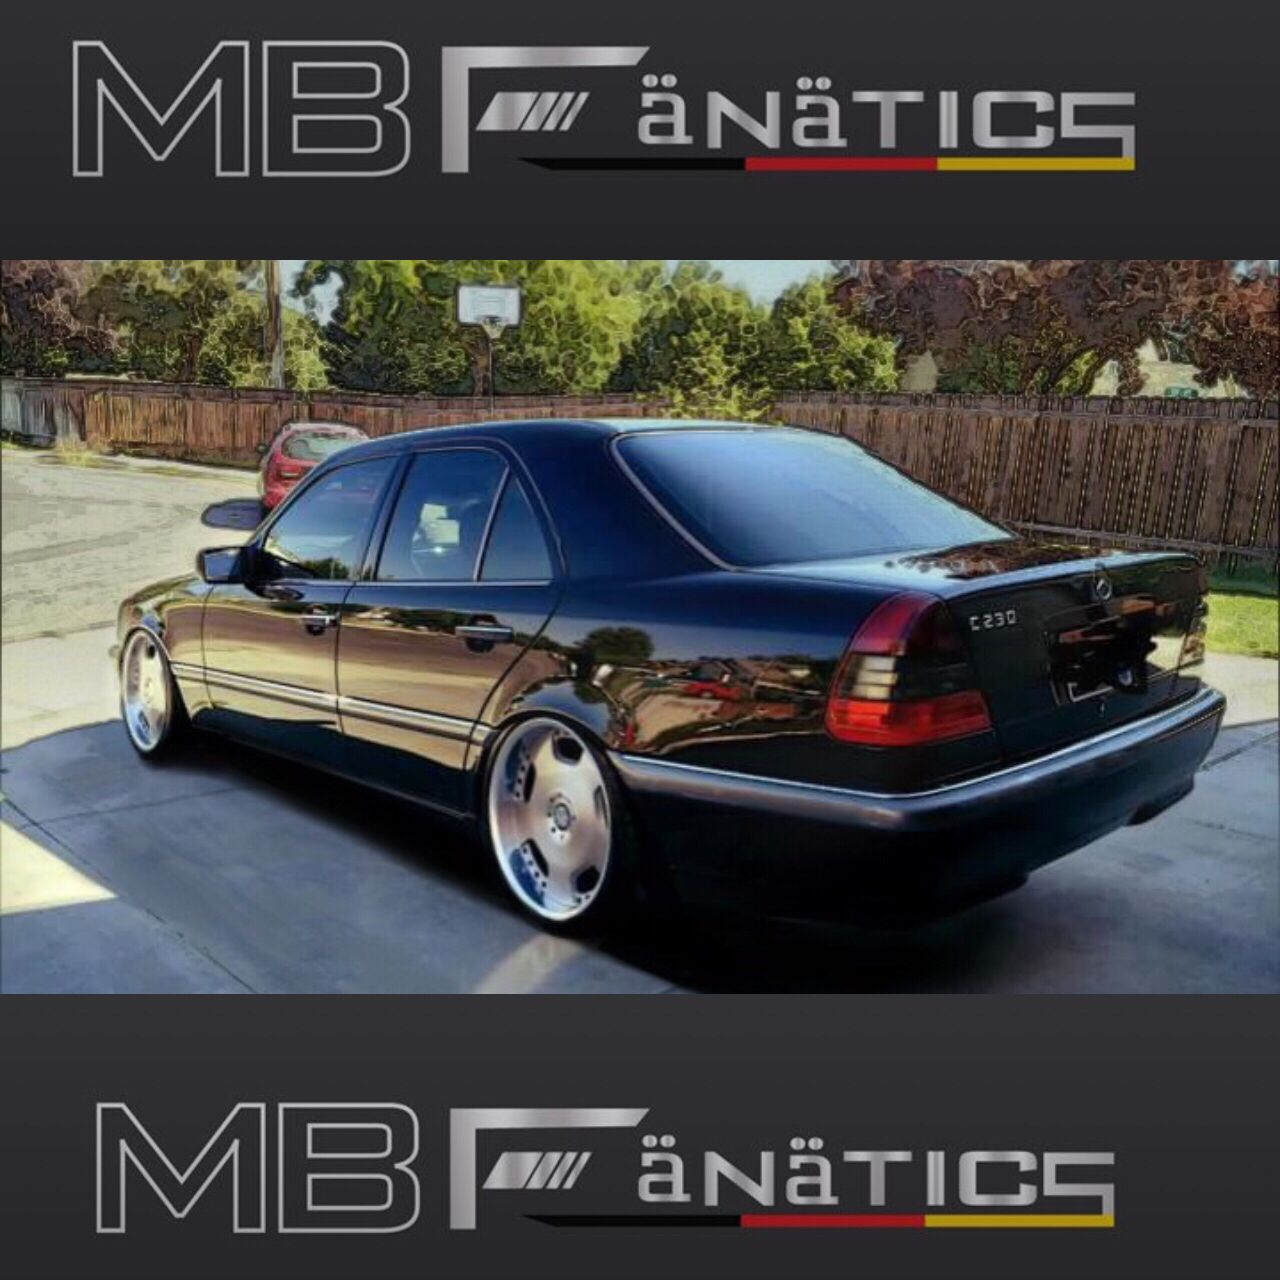 Mercedes Benz 1998 C230: Rocky's 1998 MB W202 C230 Photoshopped To The Stance I Am